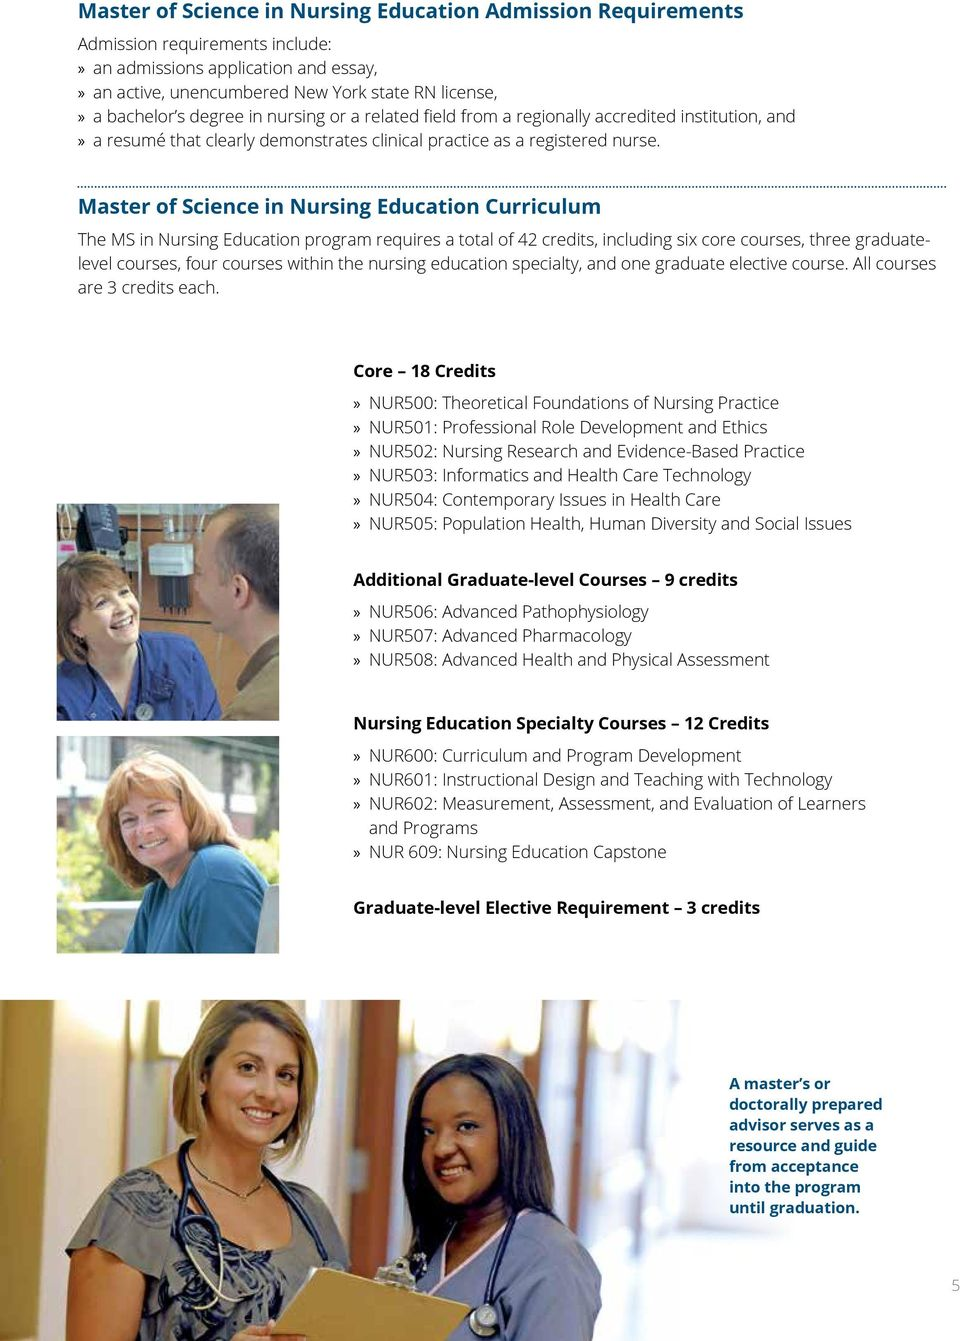 Master of Science in Nursing Education Curriculum The MS in Nursing Education program requires a total of 42 credits, including six core courses, three graduatelevel courses, four courses within the